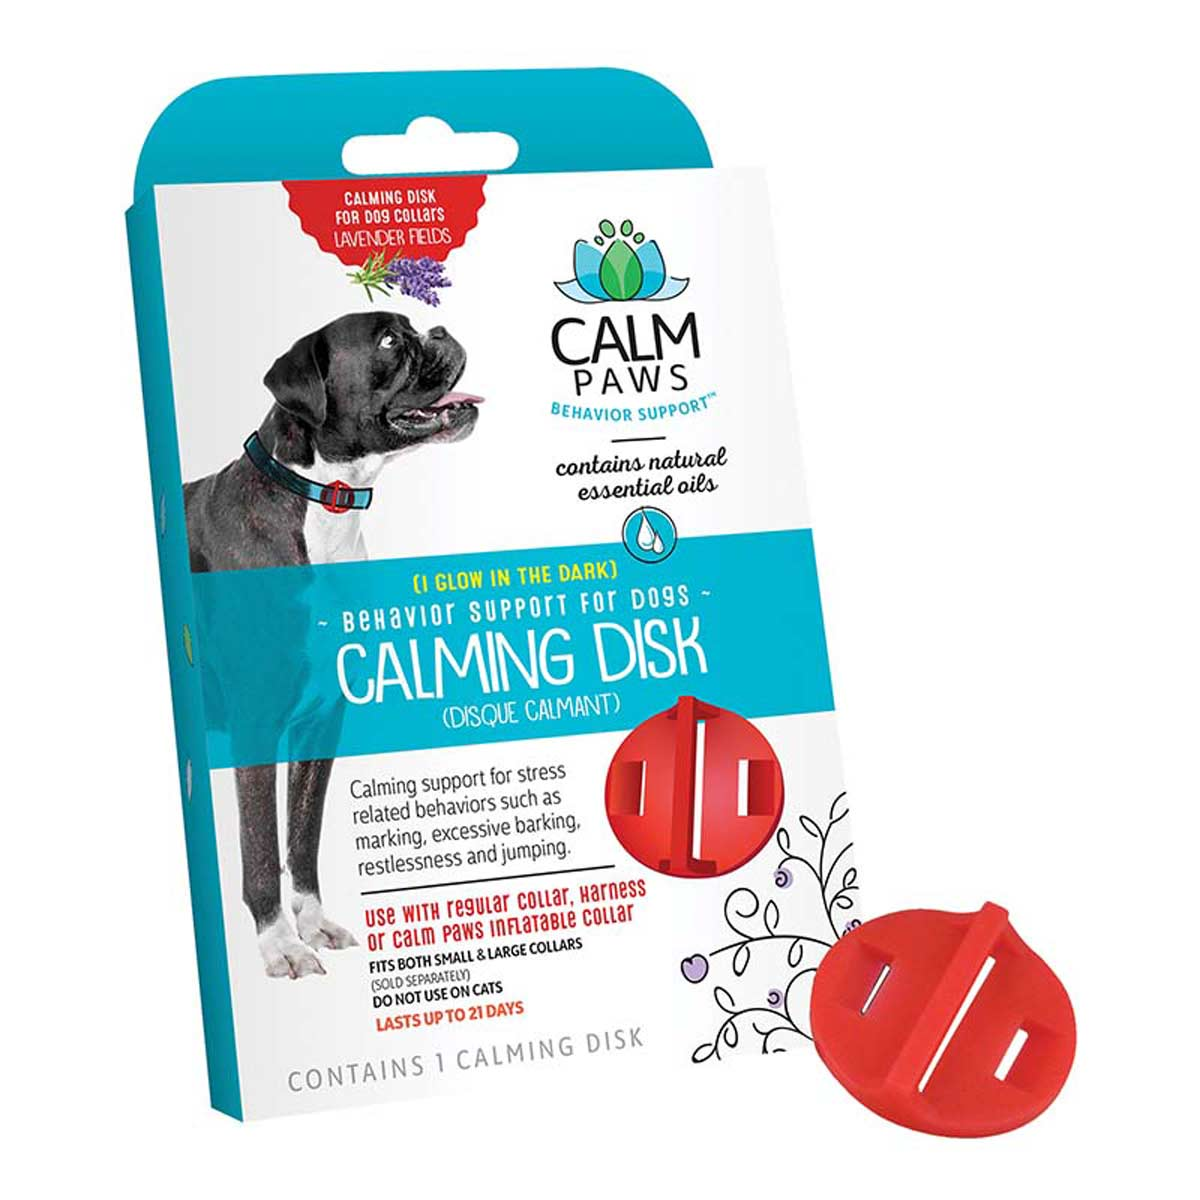 Calm Paws Calming Disk for Dogs outside Box